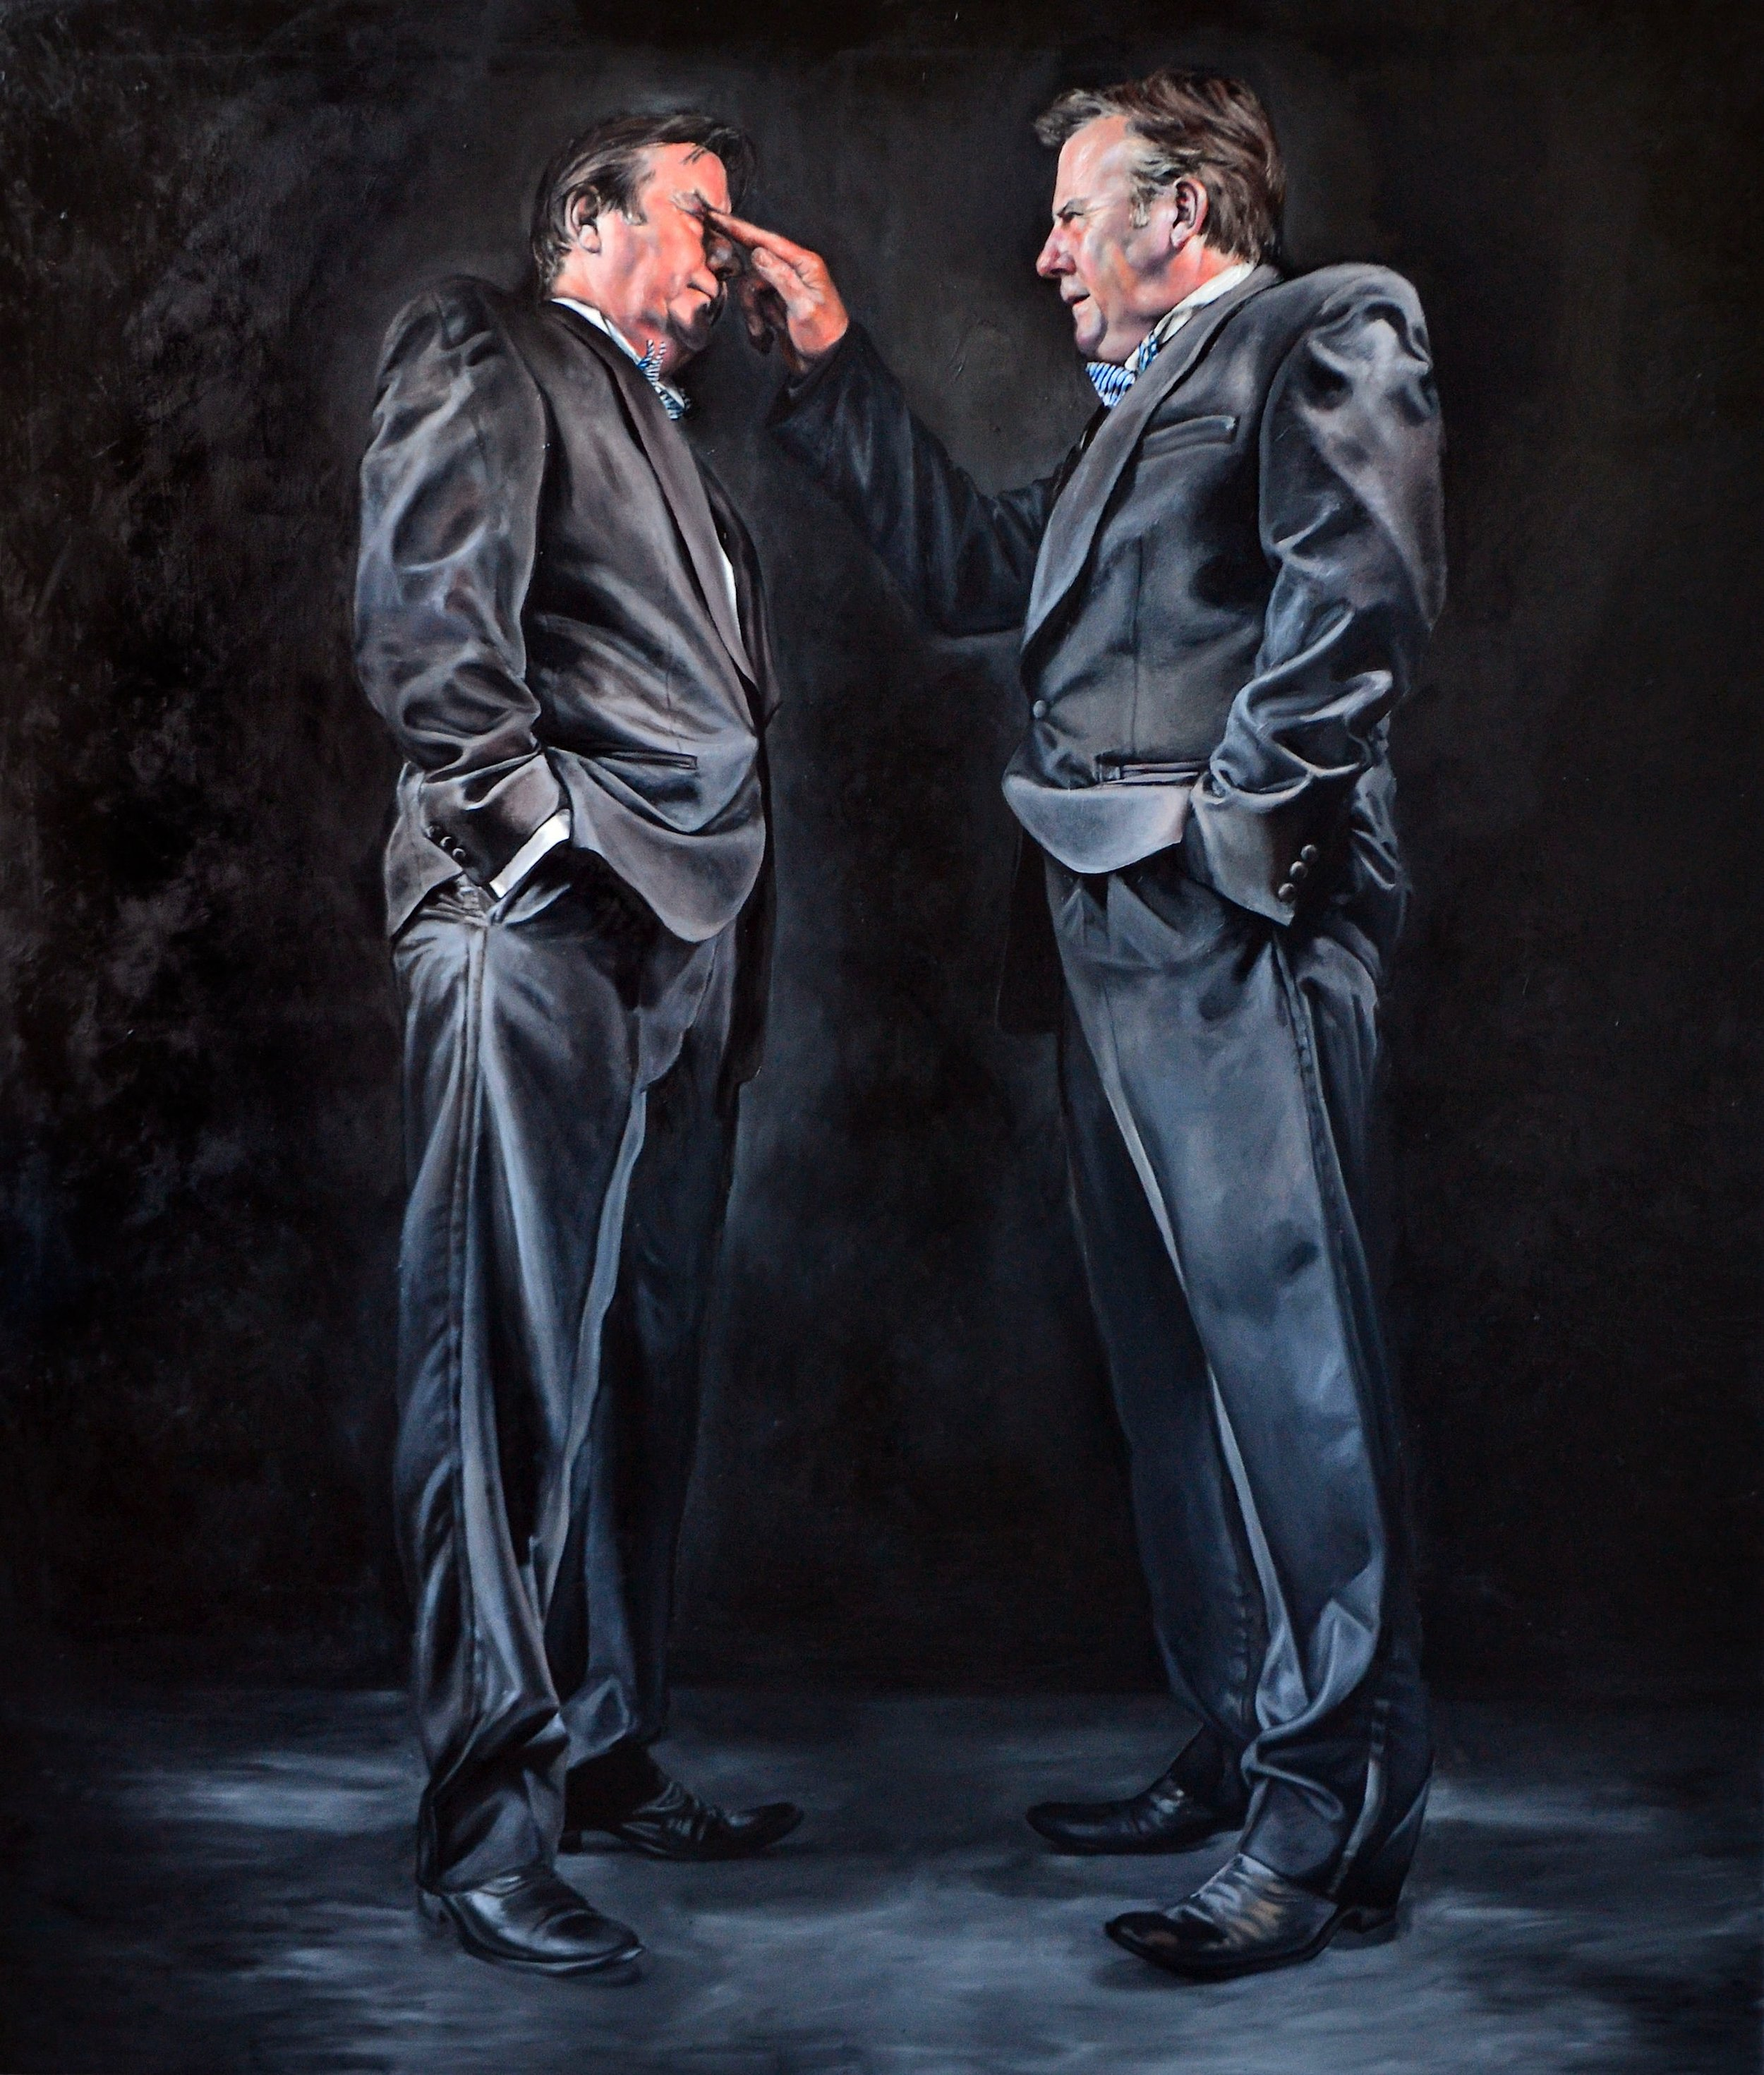 %22When Its Just You and Yourself, 2013, oil on linen, 1990 X 1680cm%22.jpg